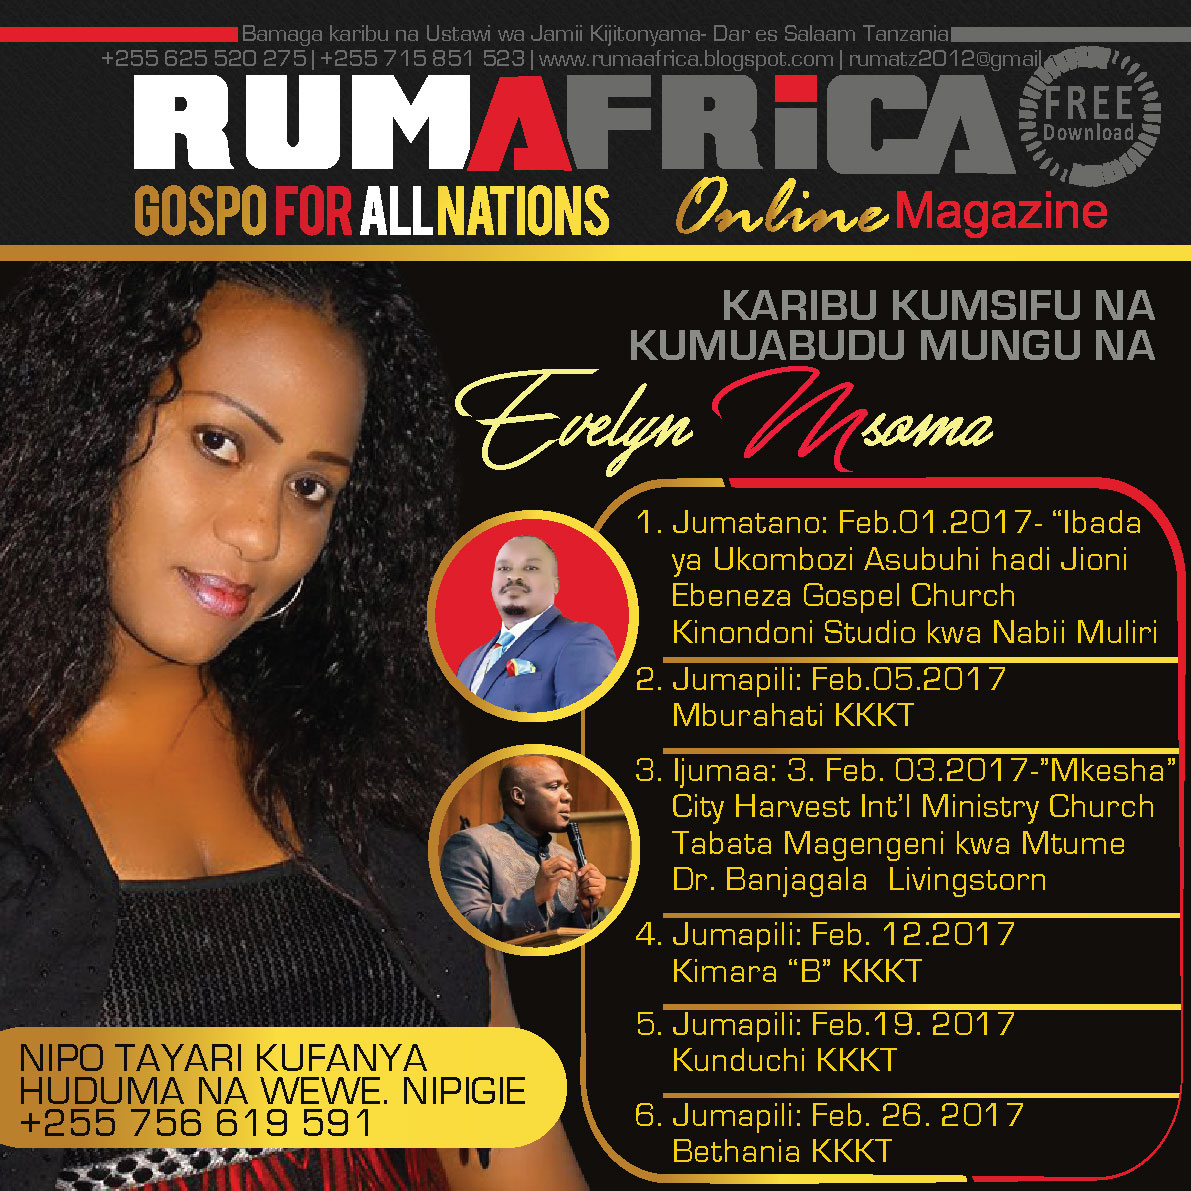 EVELYN MSOMA